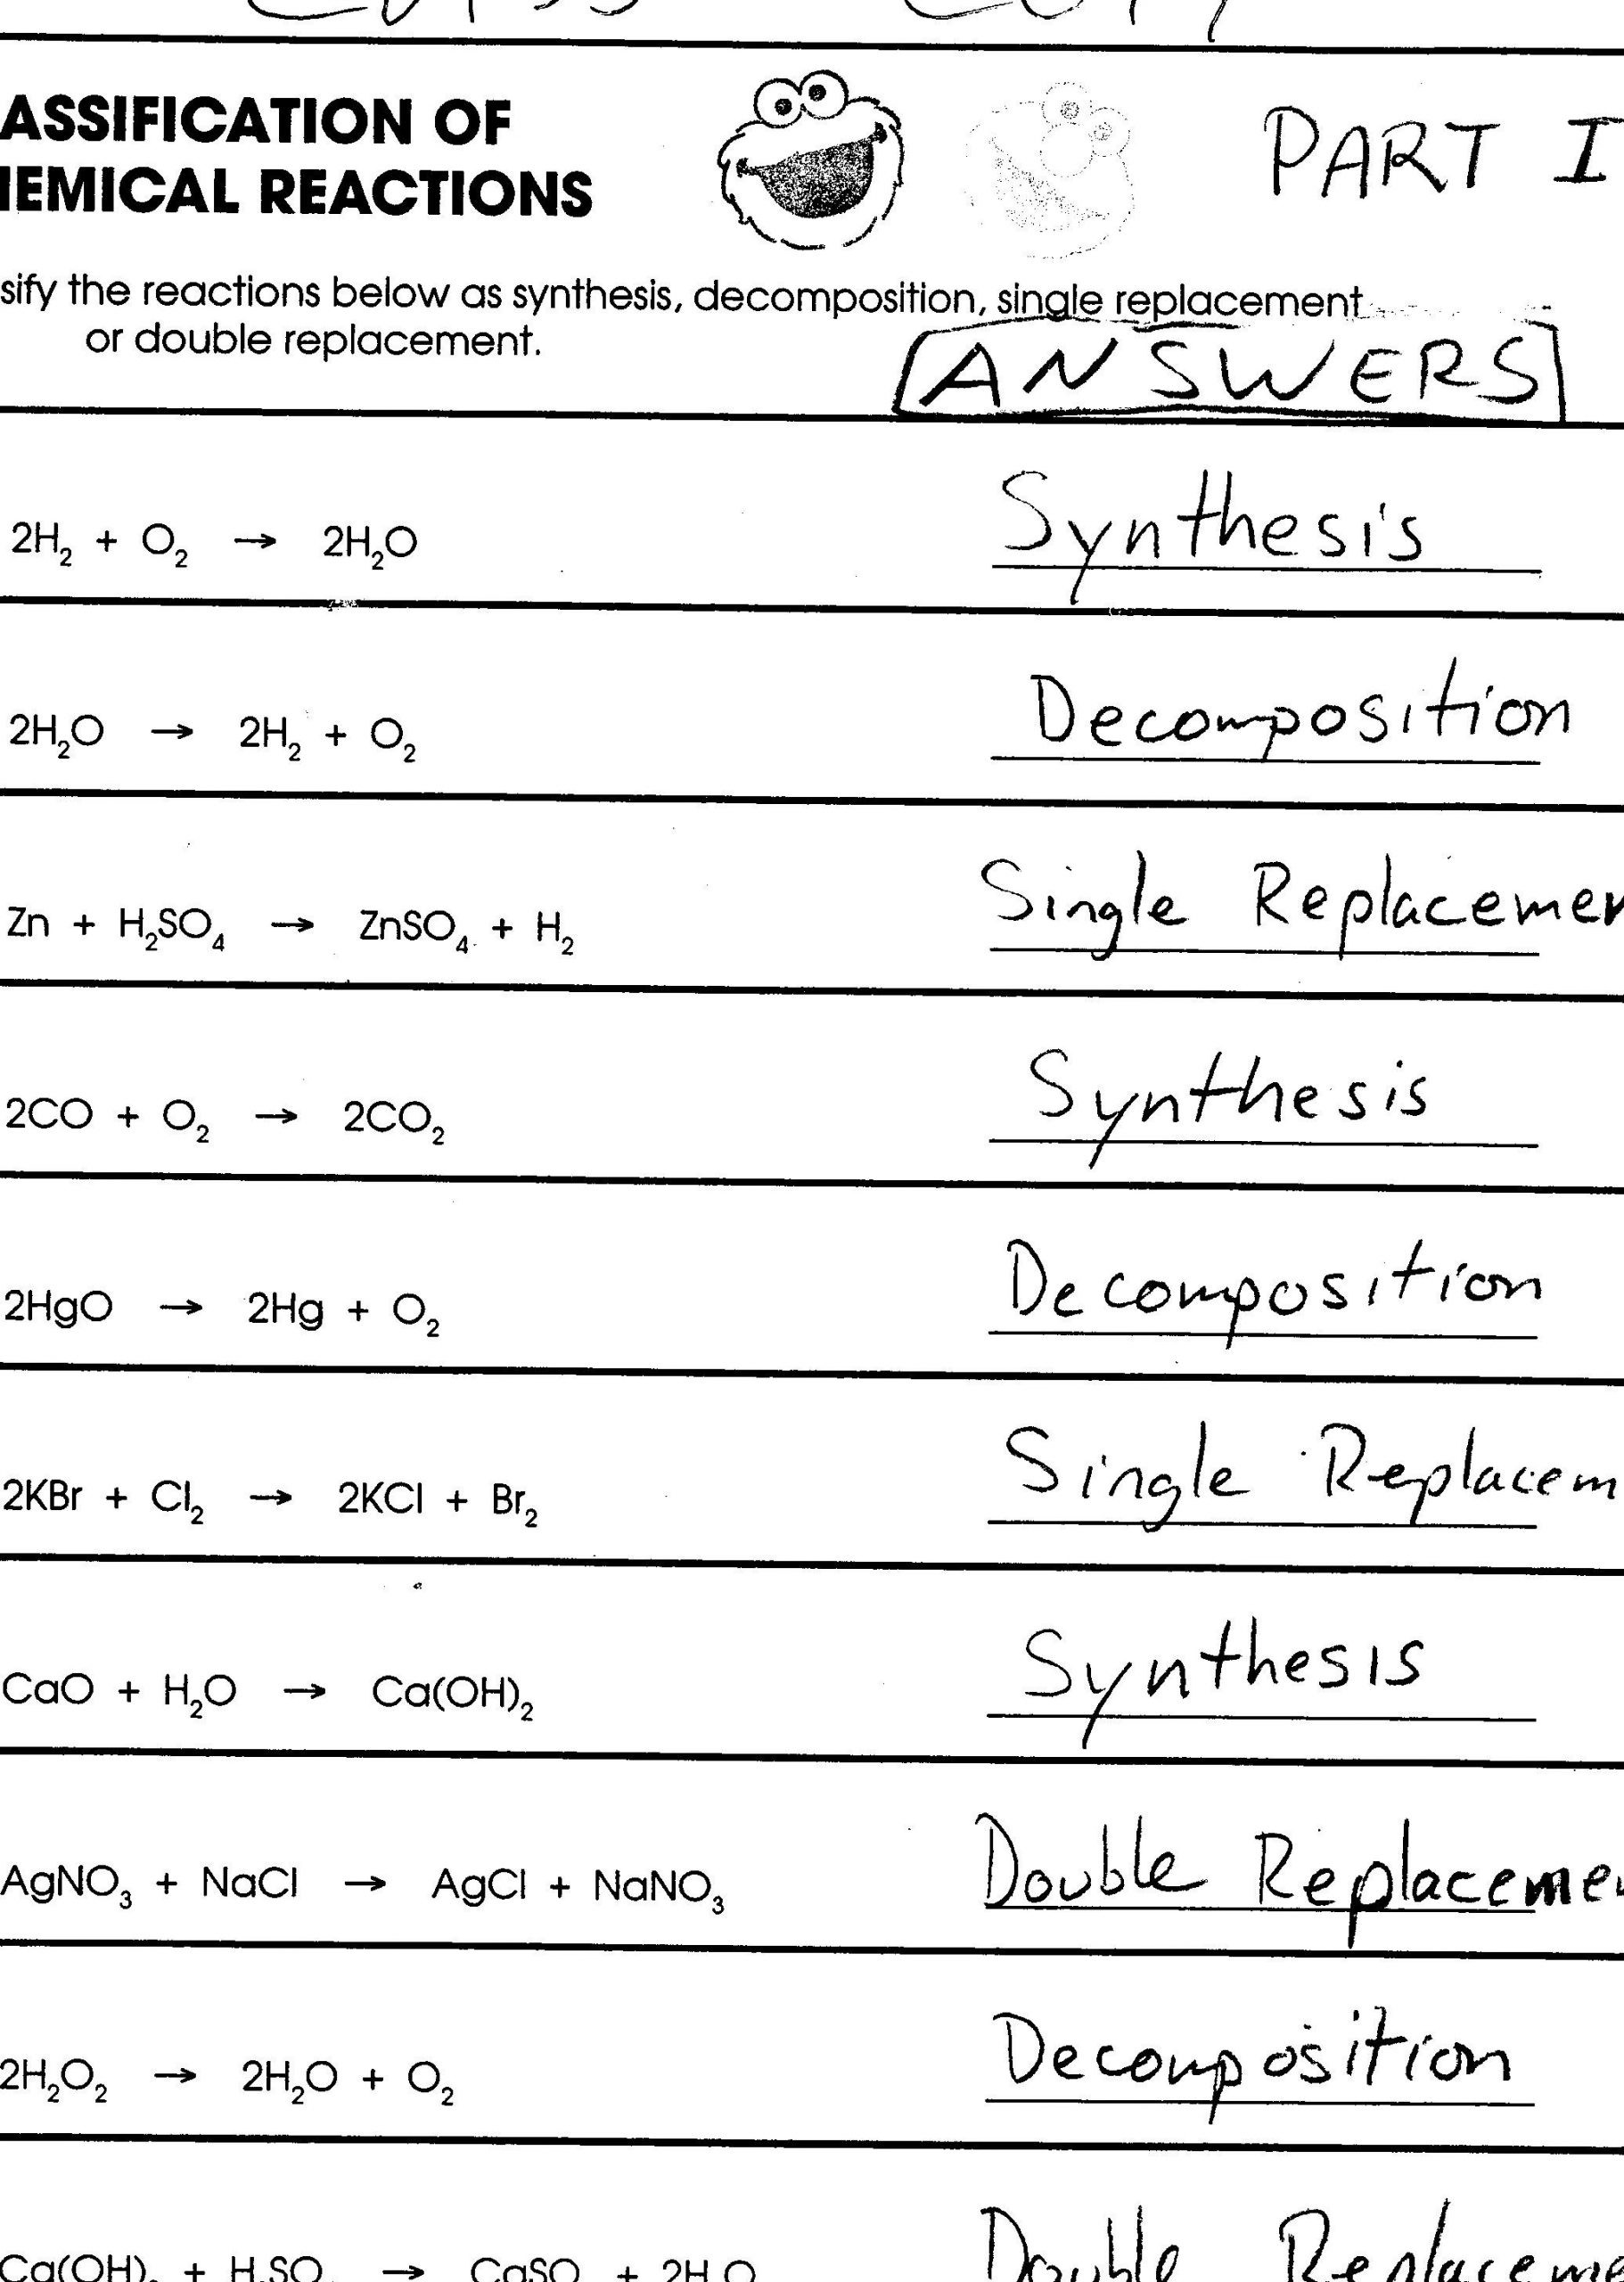 Classifying Matter Worksheet Answers 10 Classifying Chemical Reactions Worksheet Answers